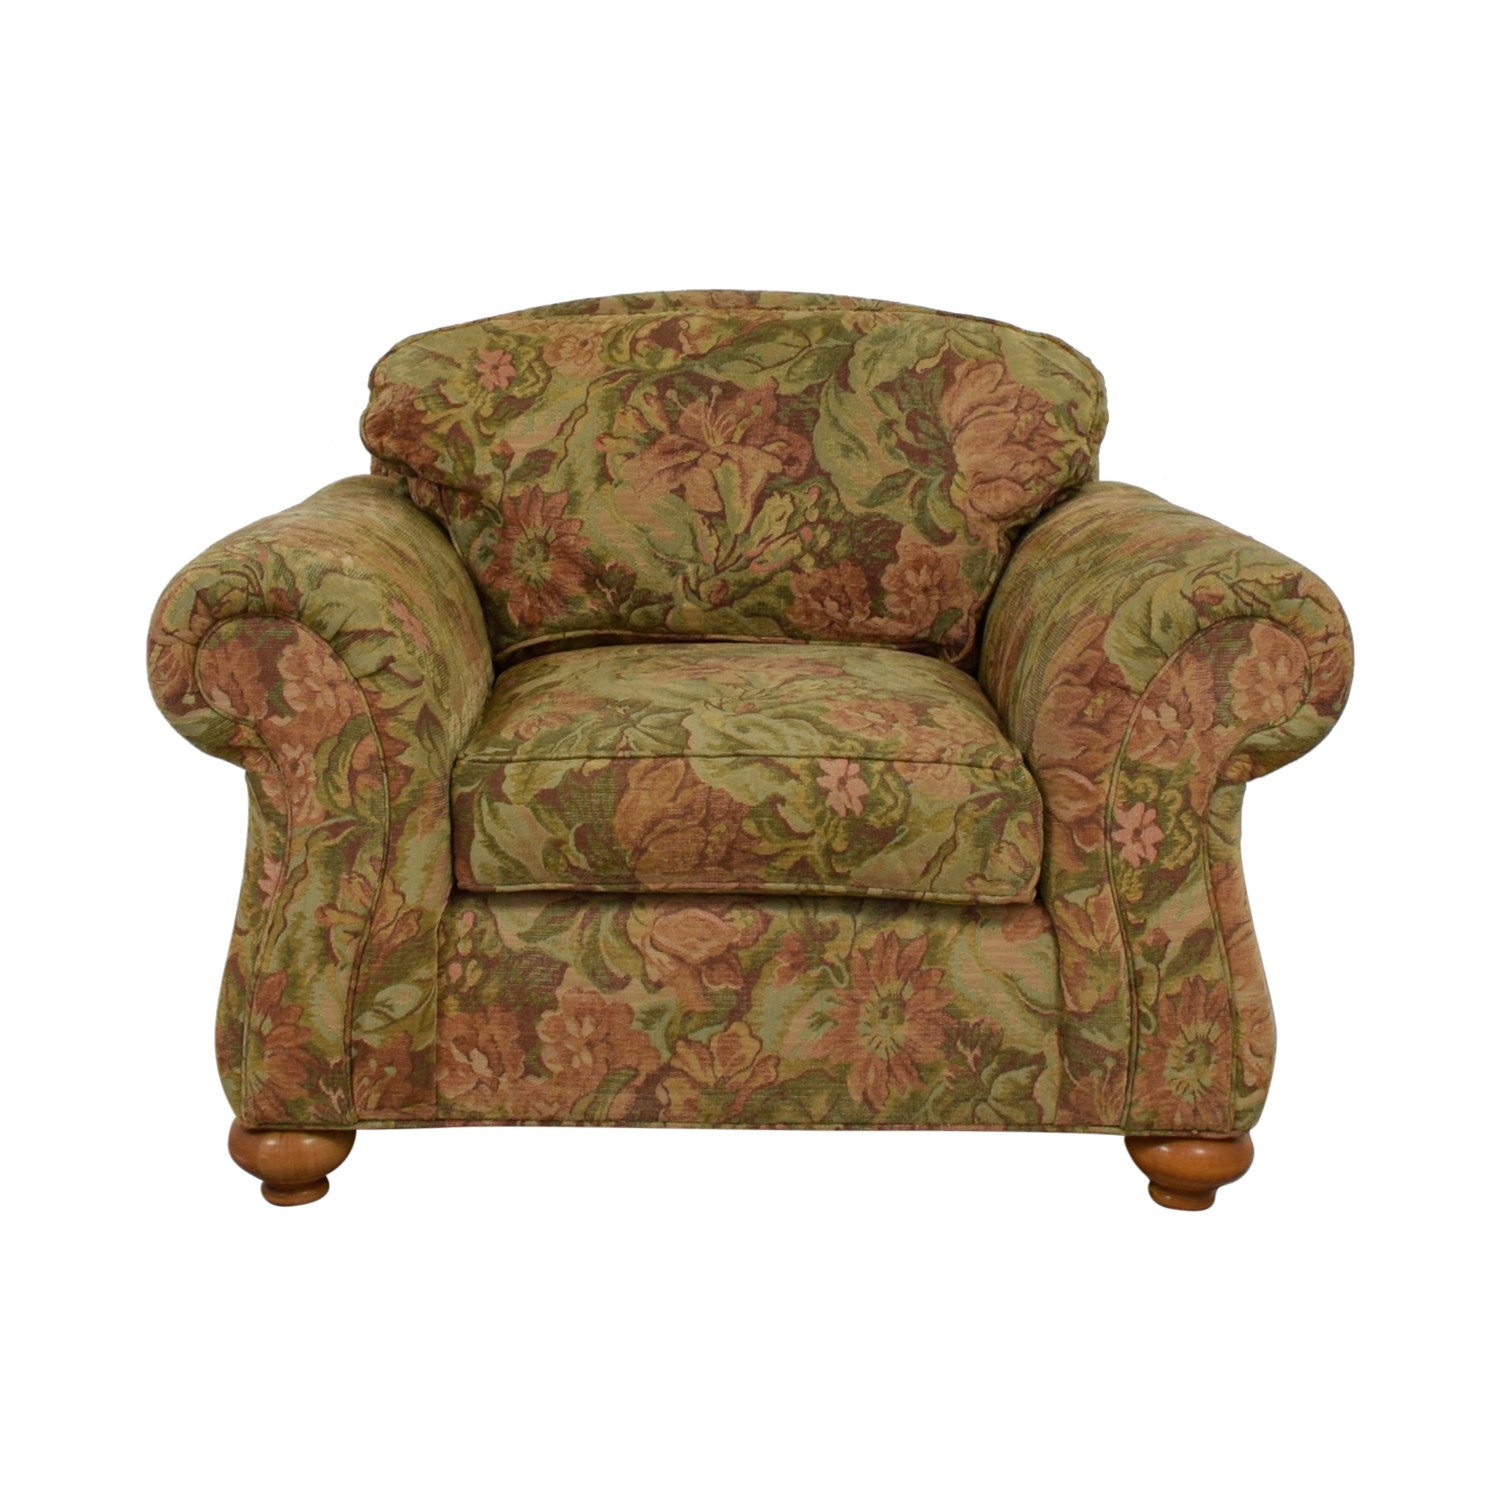 Ethan Allen Ethan Allen Flower Fabric Lounge Chair for sale